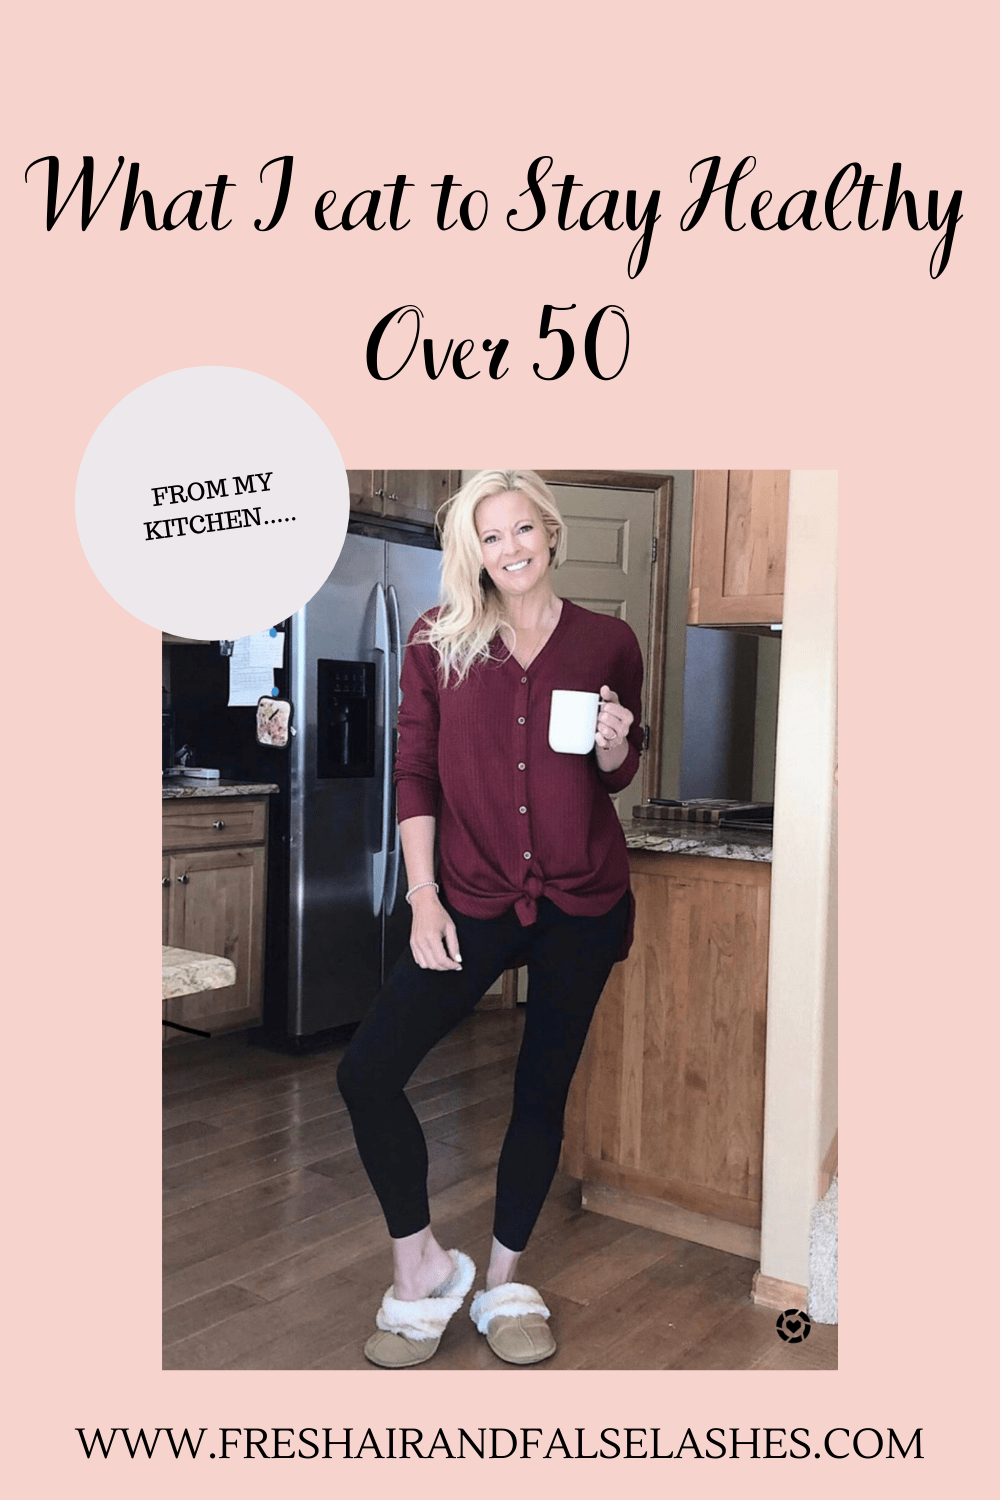 What Im eating to stay healthy over 50